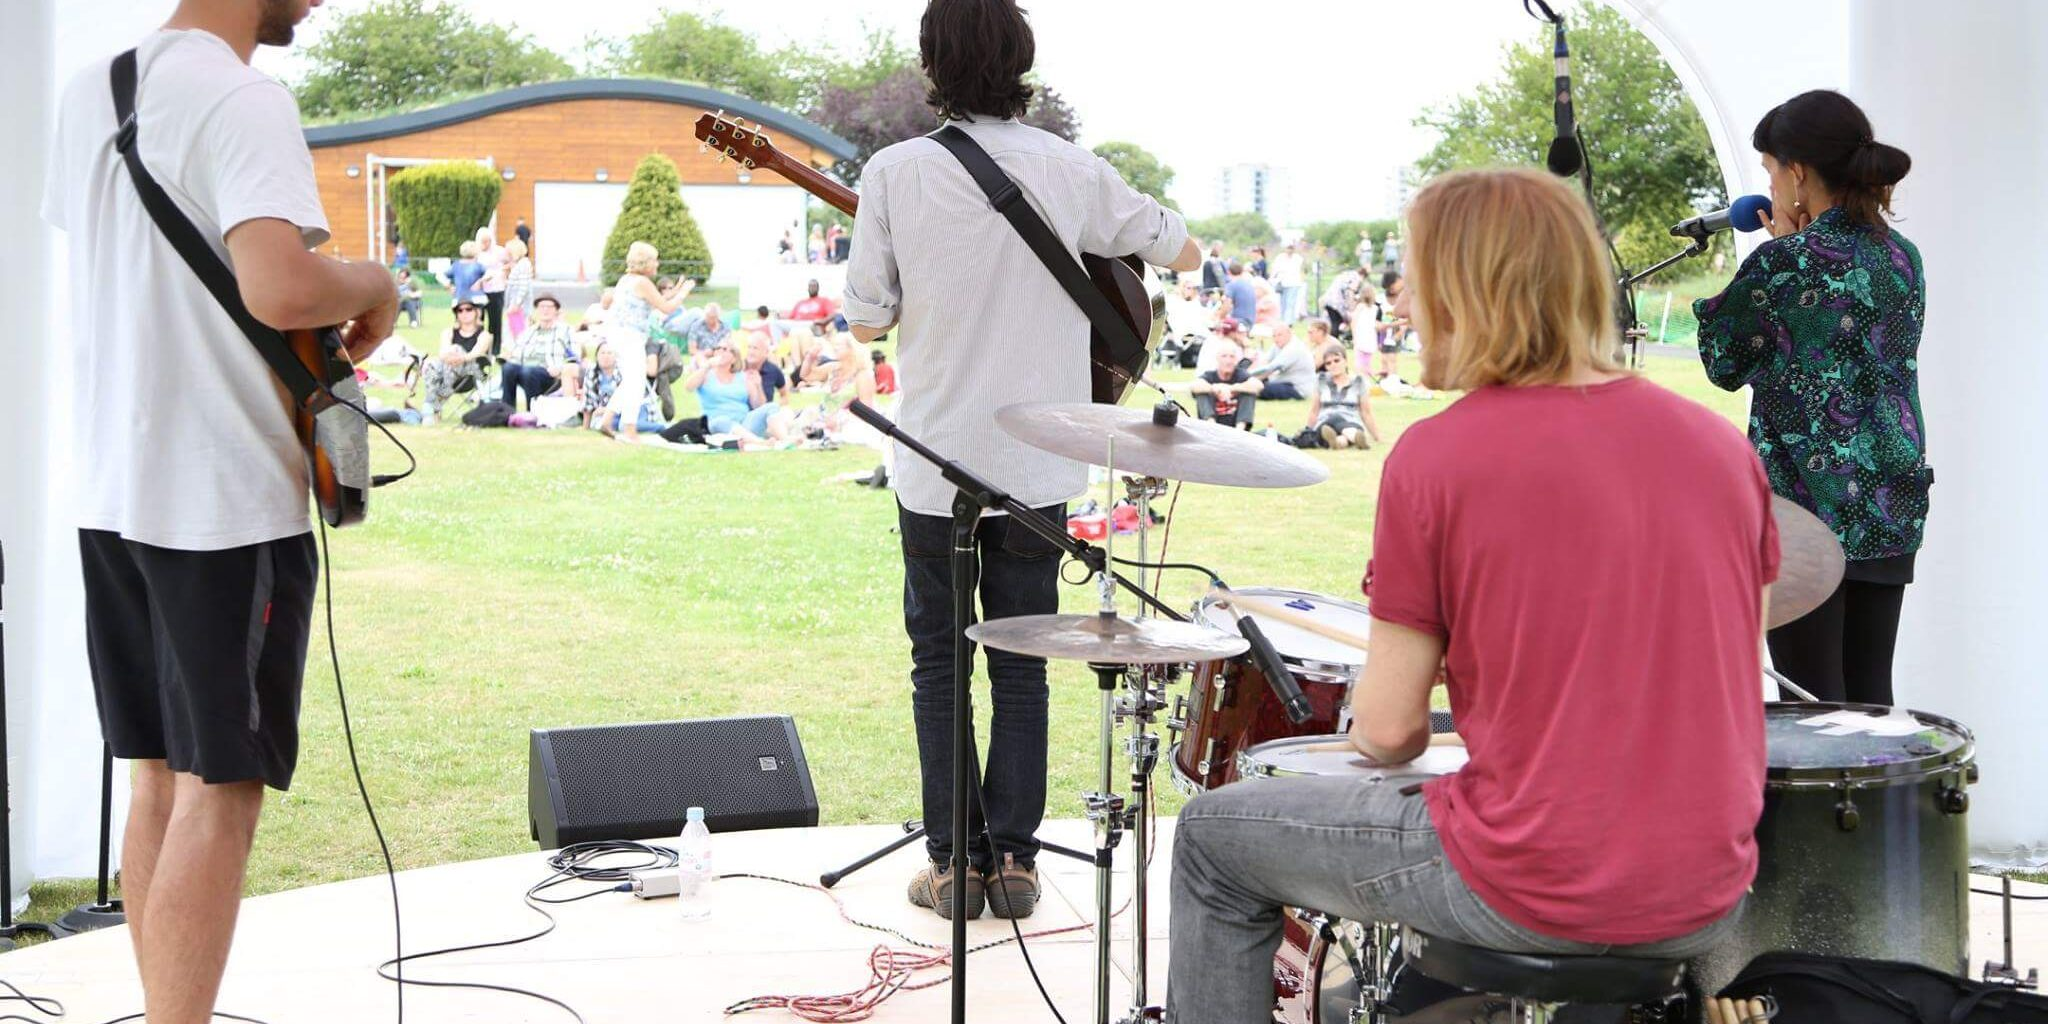 Band playing at outdoor event